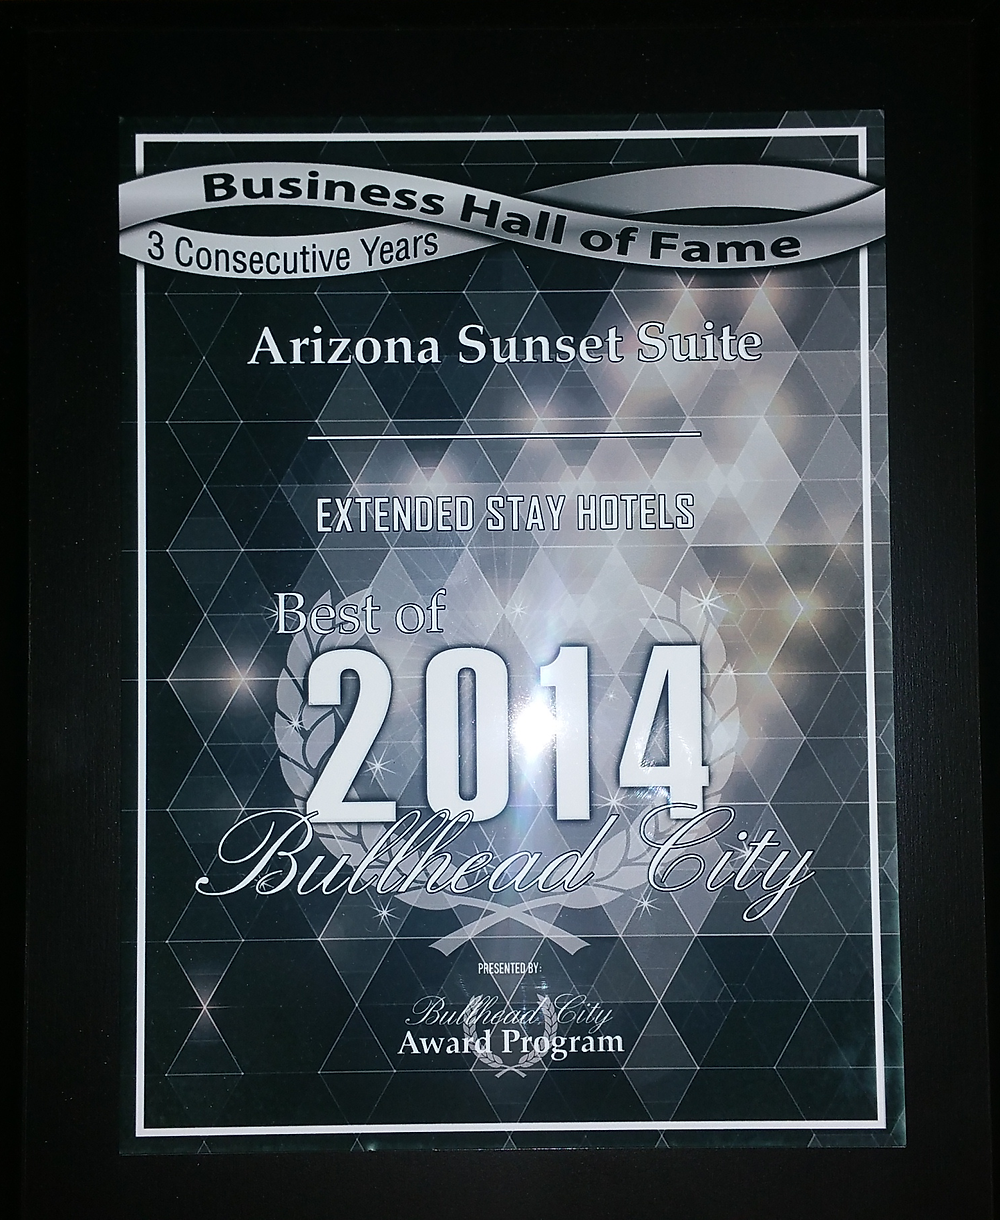 2014 Best of Bullhead City Awards for Extend Stay and now qualifies for the Bull